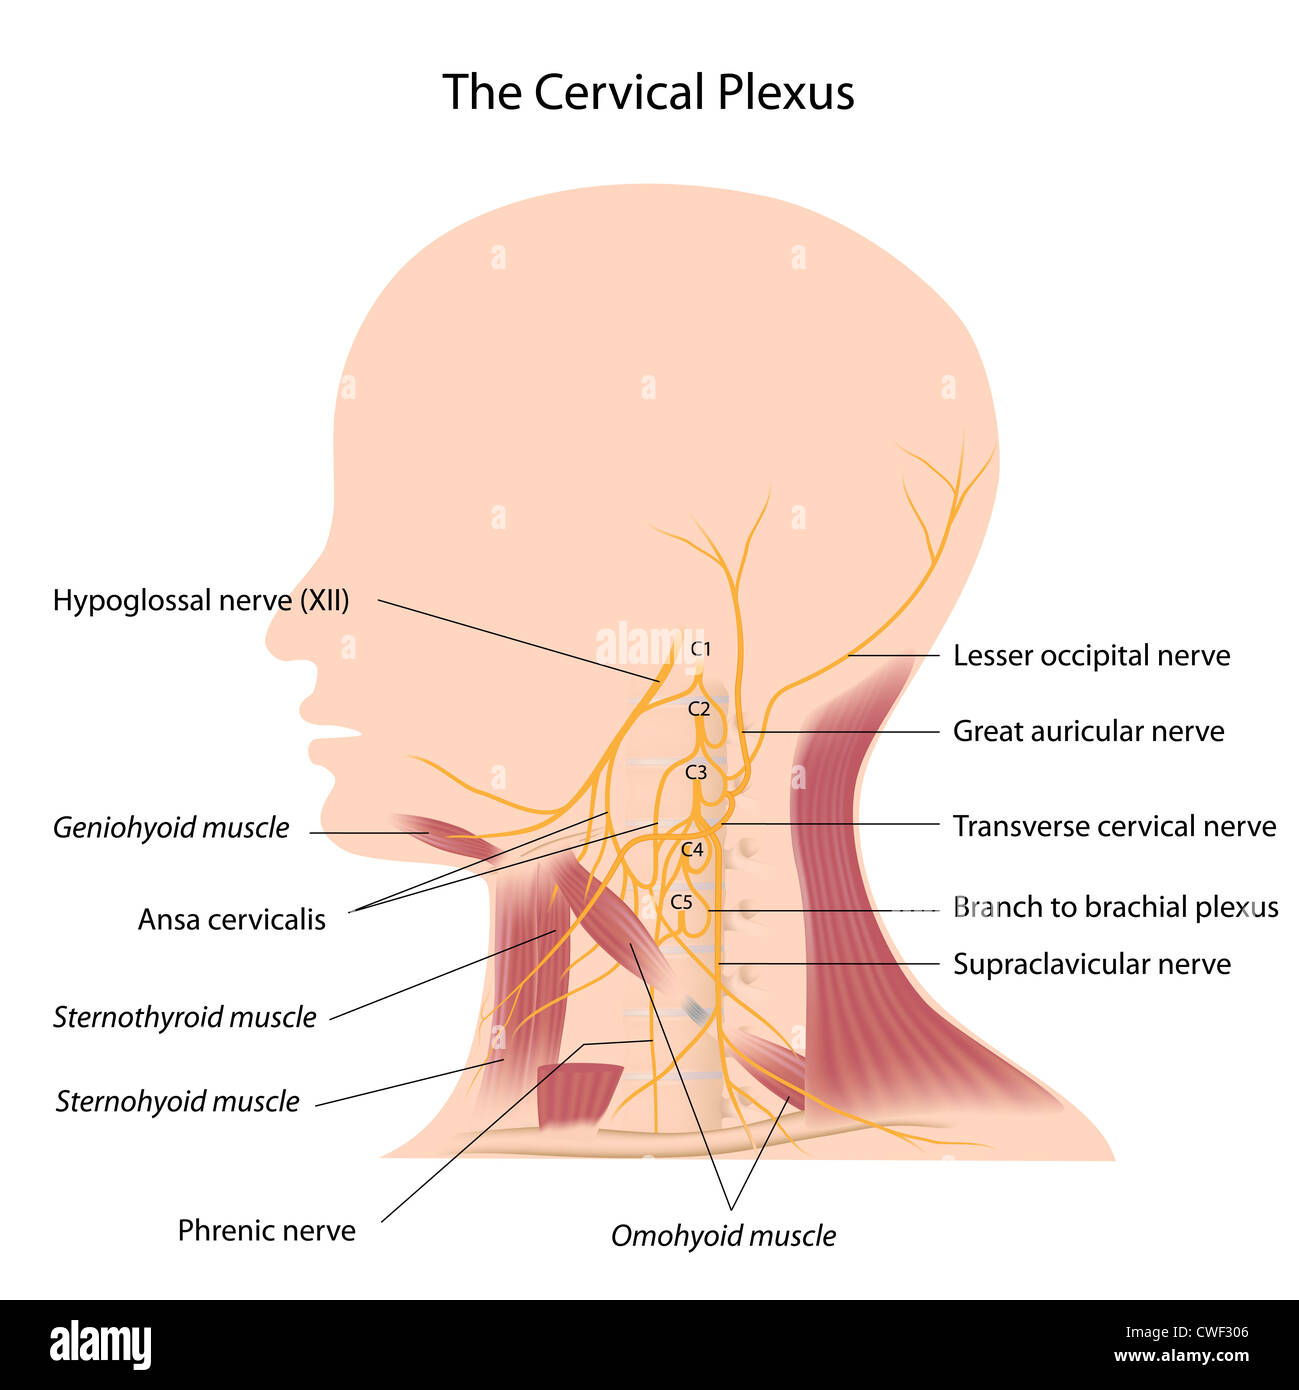 Lesser Occipital Nerve Stock Photos & Lesser Occipital Nerve Stock ...